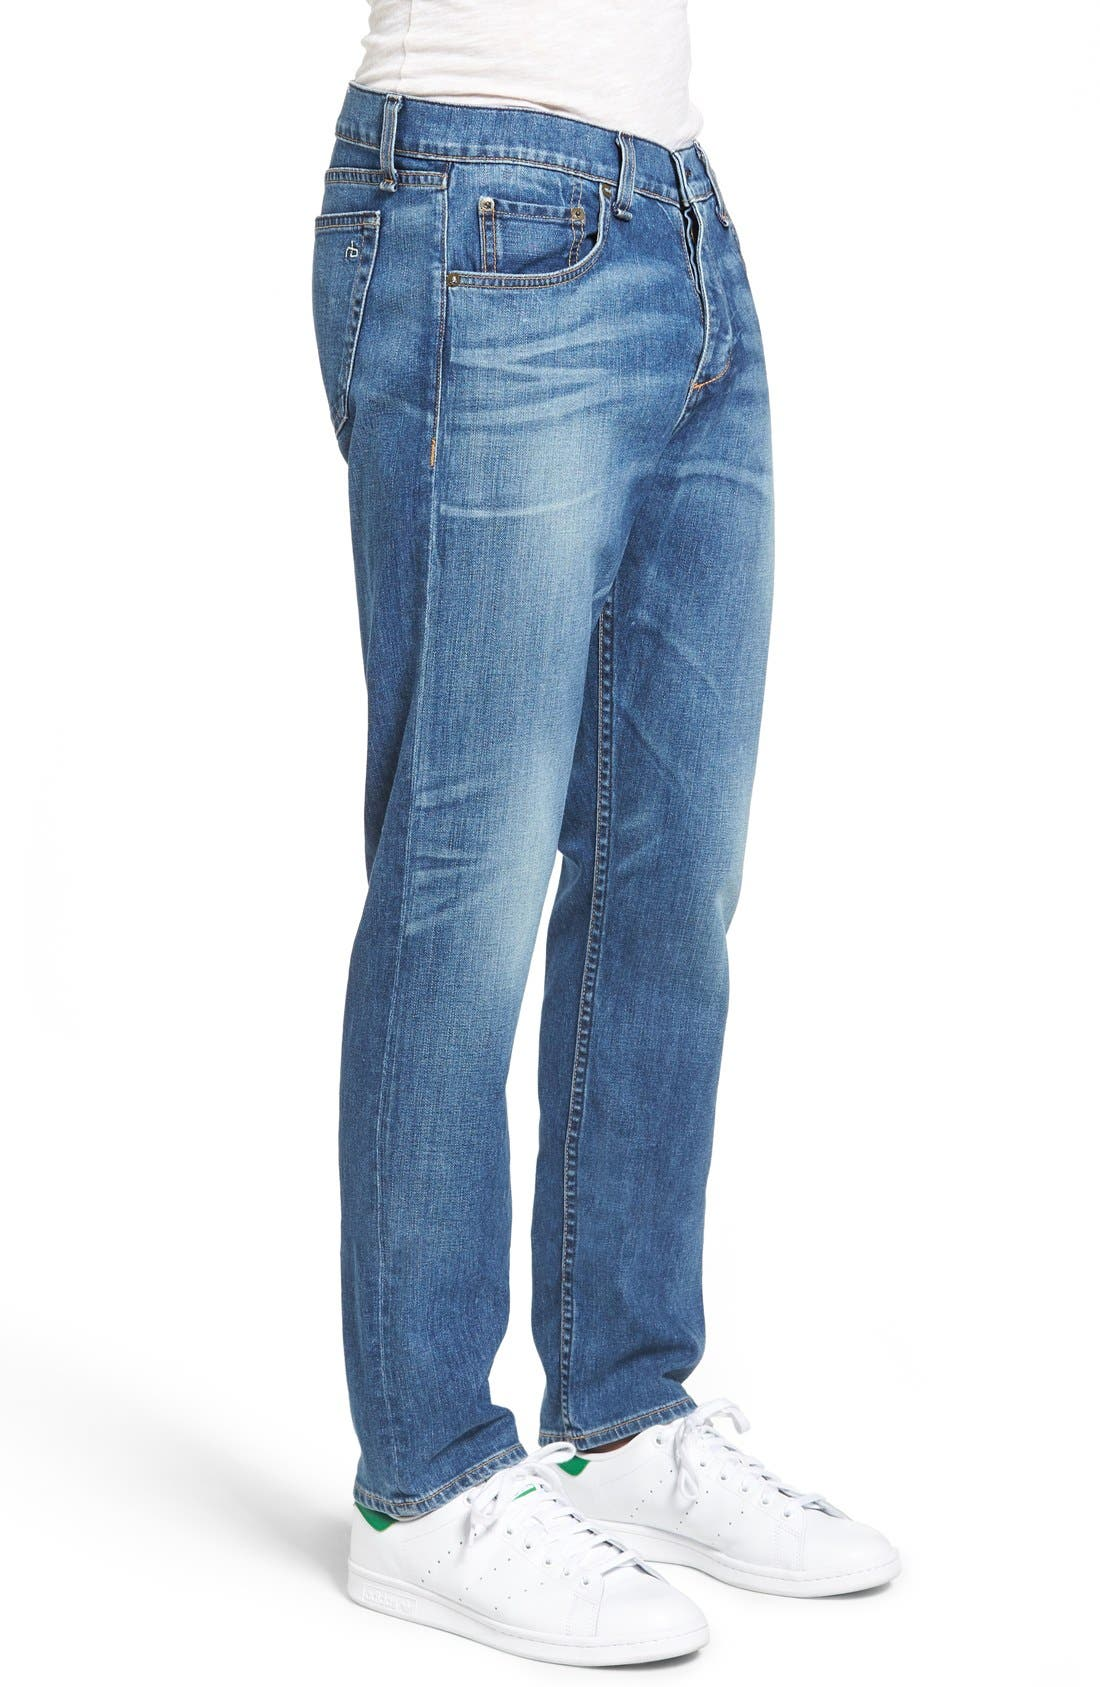 Alternate Image 3  - rag & bone Standard Issue Fit 3 Slim Straight Leg Jeans (Bainbridge)